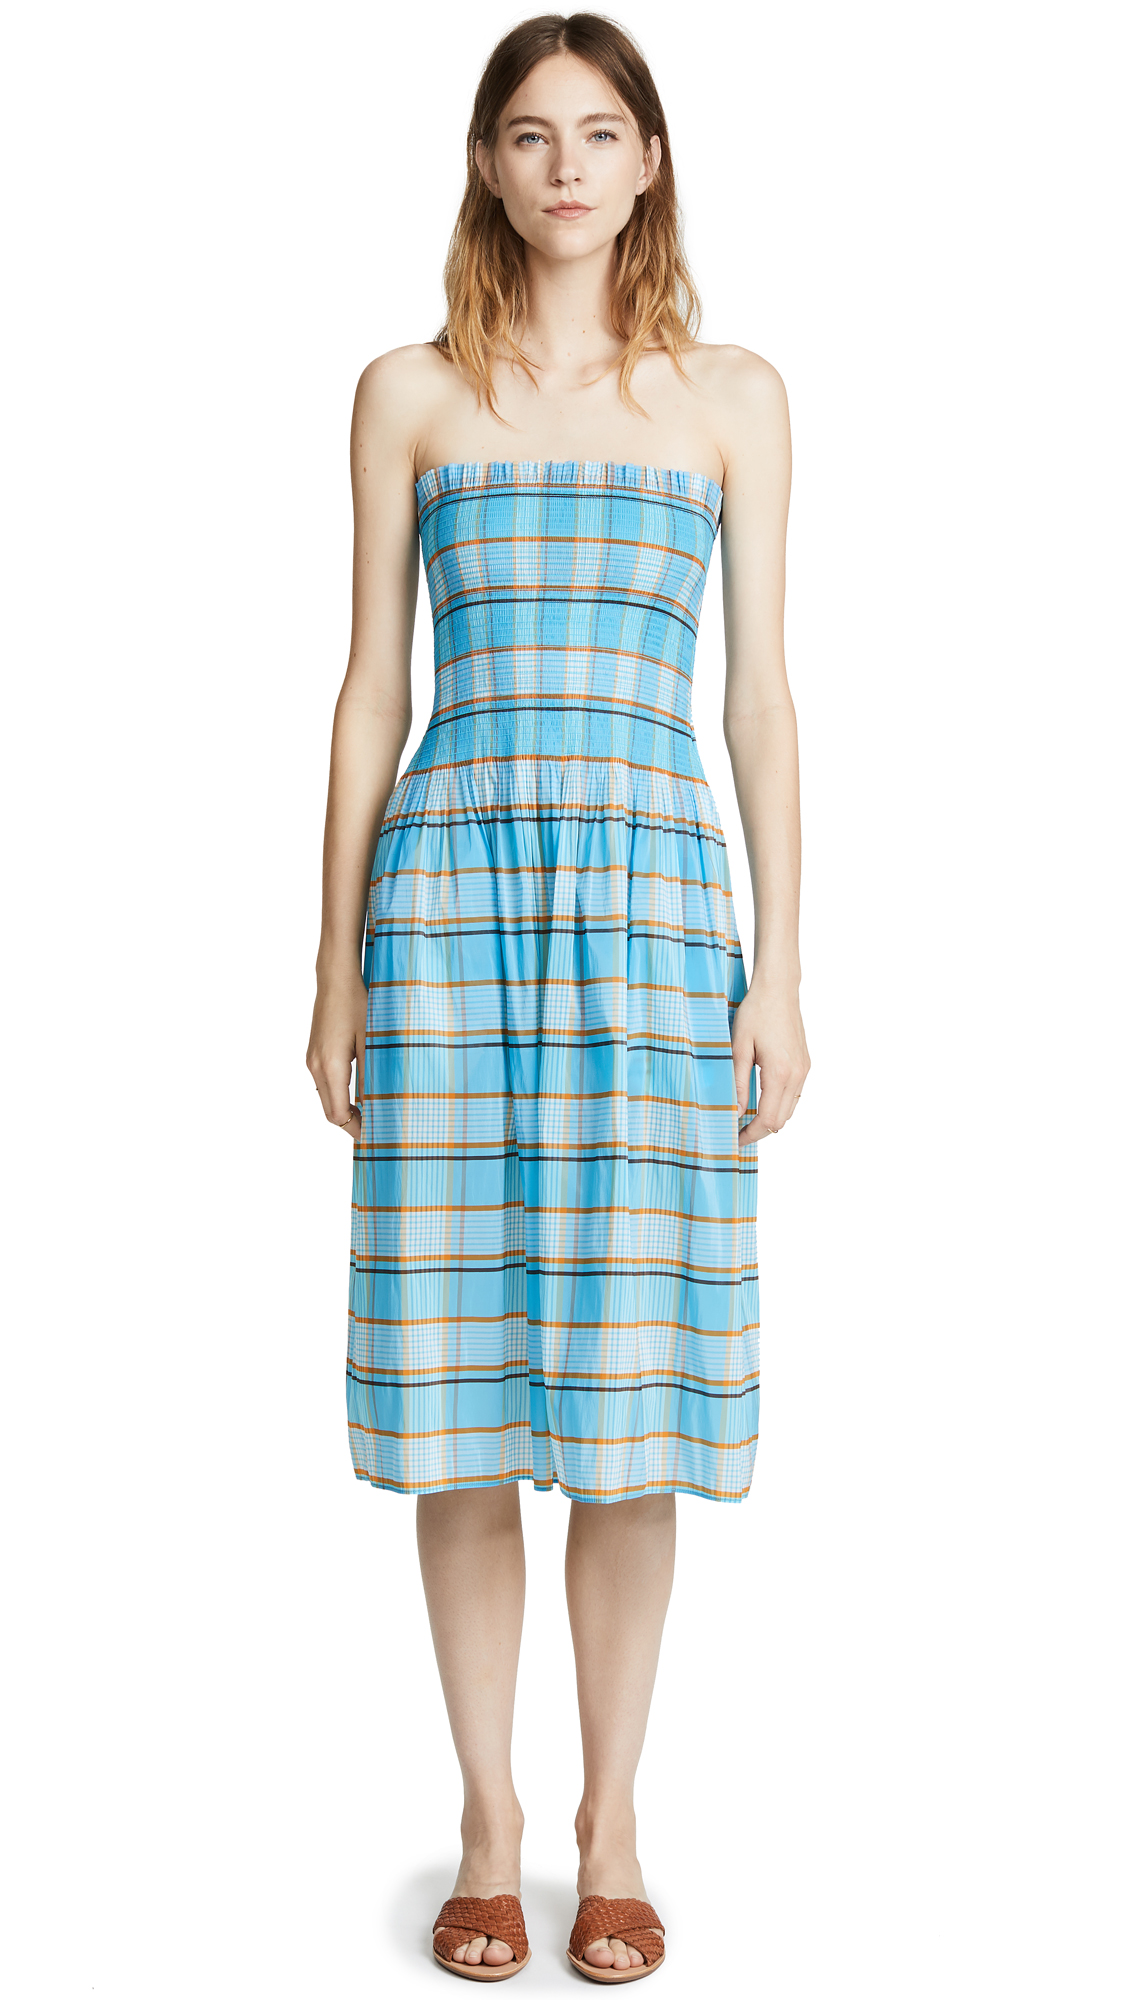 Horizon checked skirt